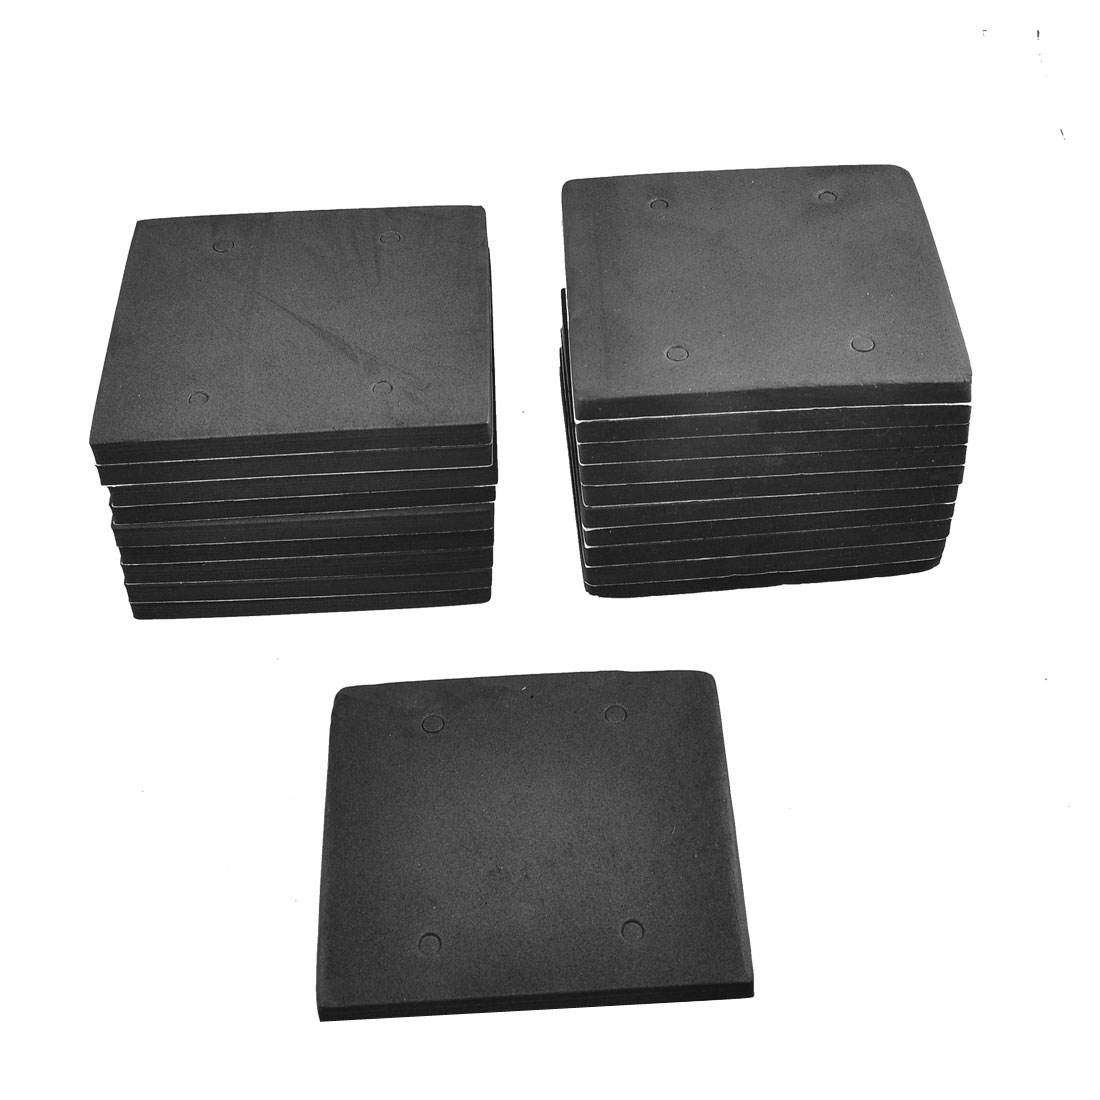 20 Pcs Square Shape Adhesive Foam Replacement Sander Back Pad Mat Black